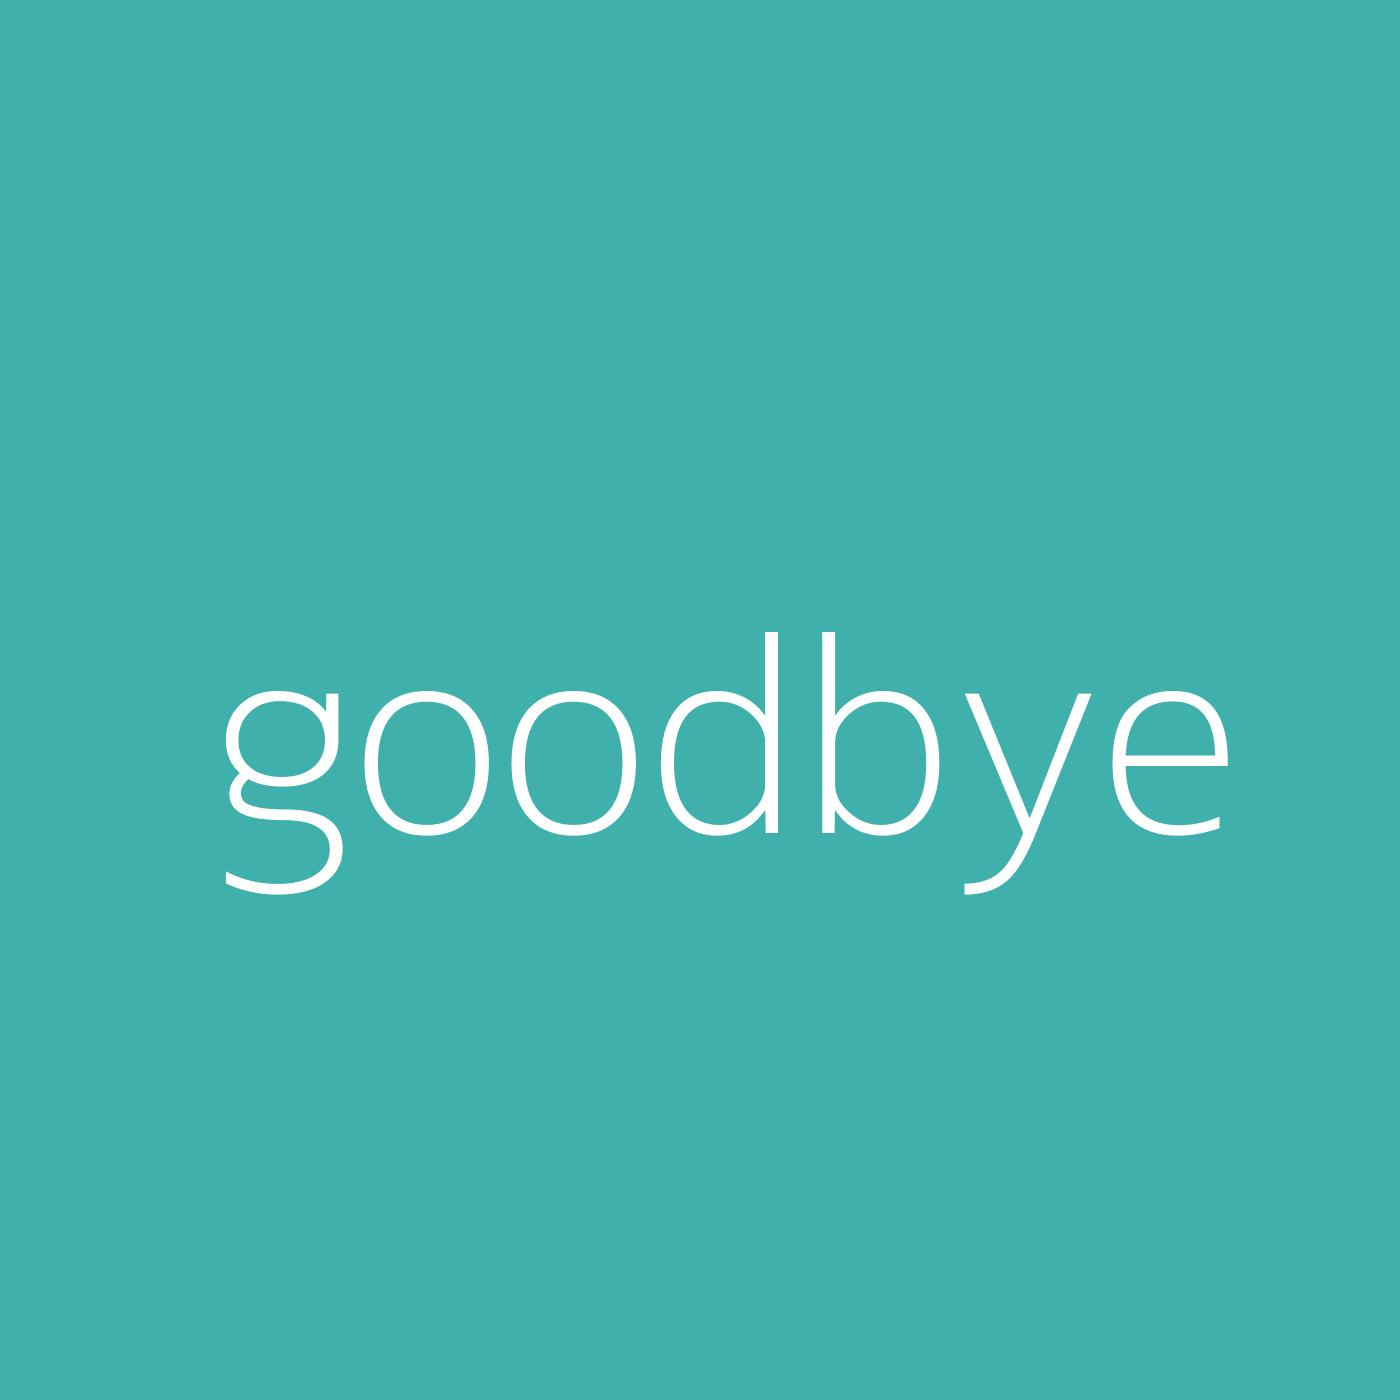 goodbye – Billie Eilish